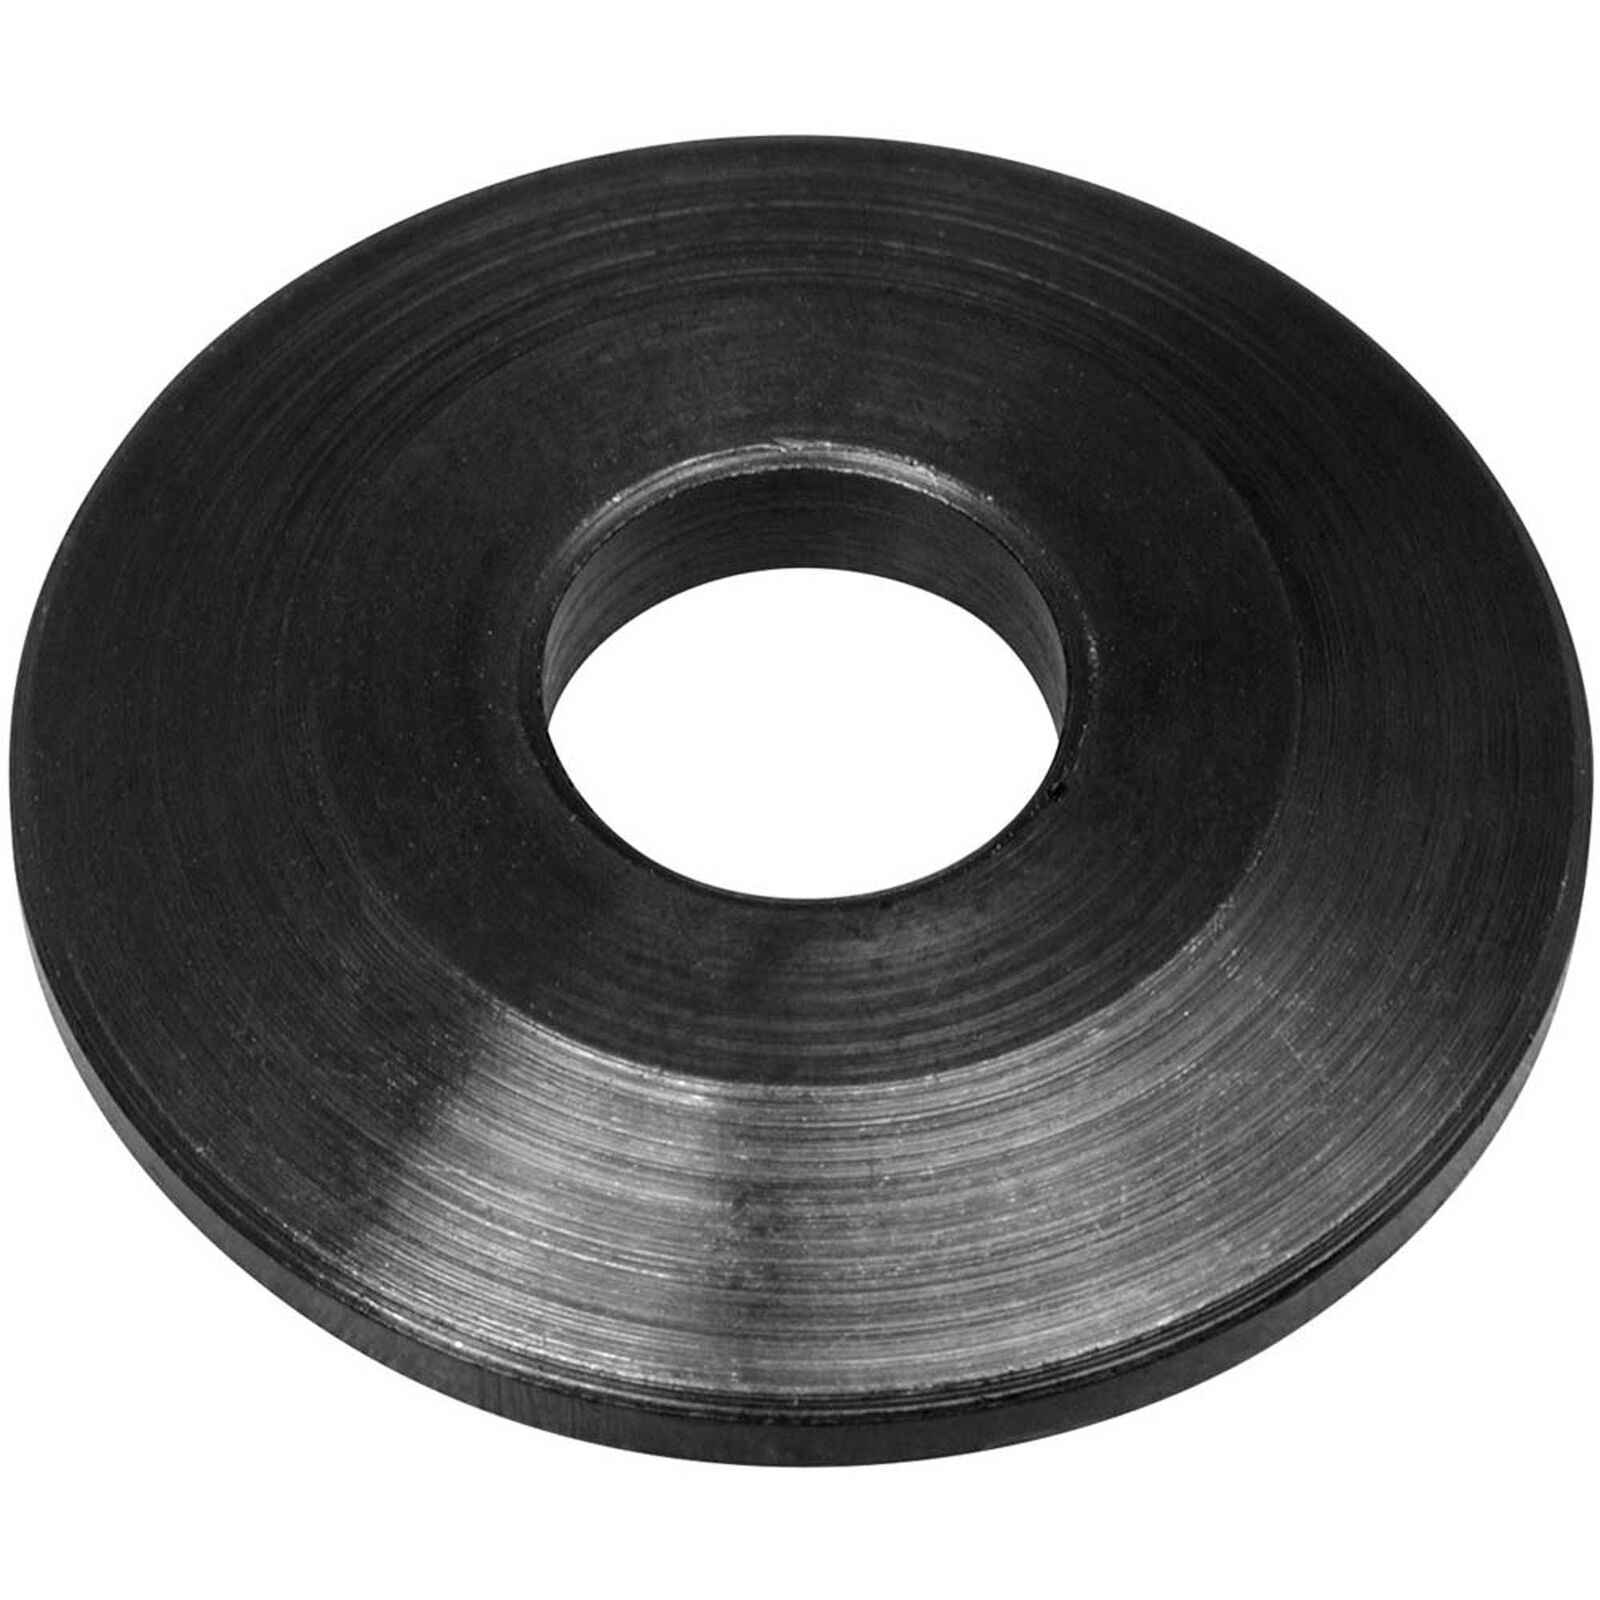 Prop Washer: 61-90